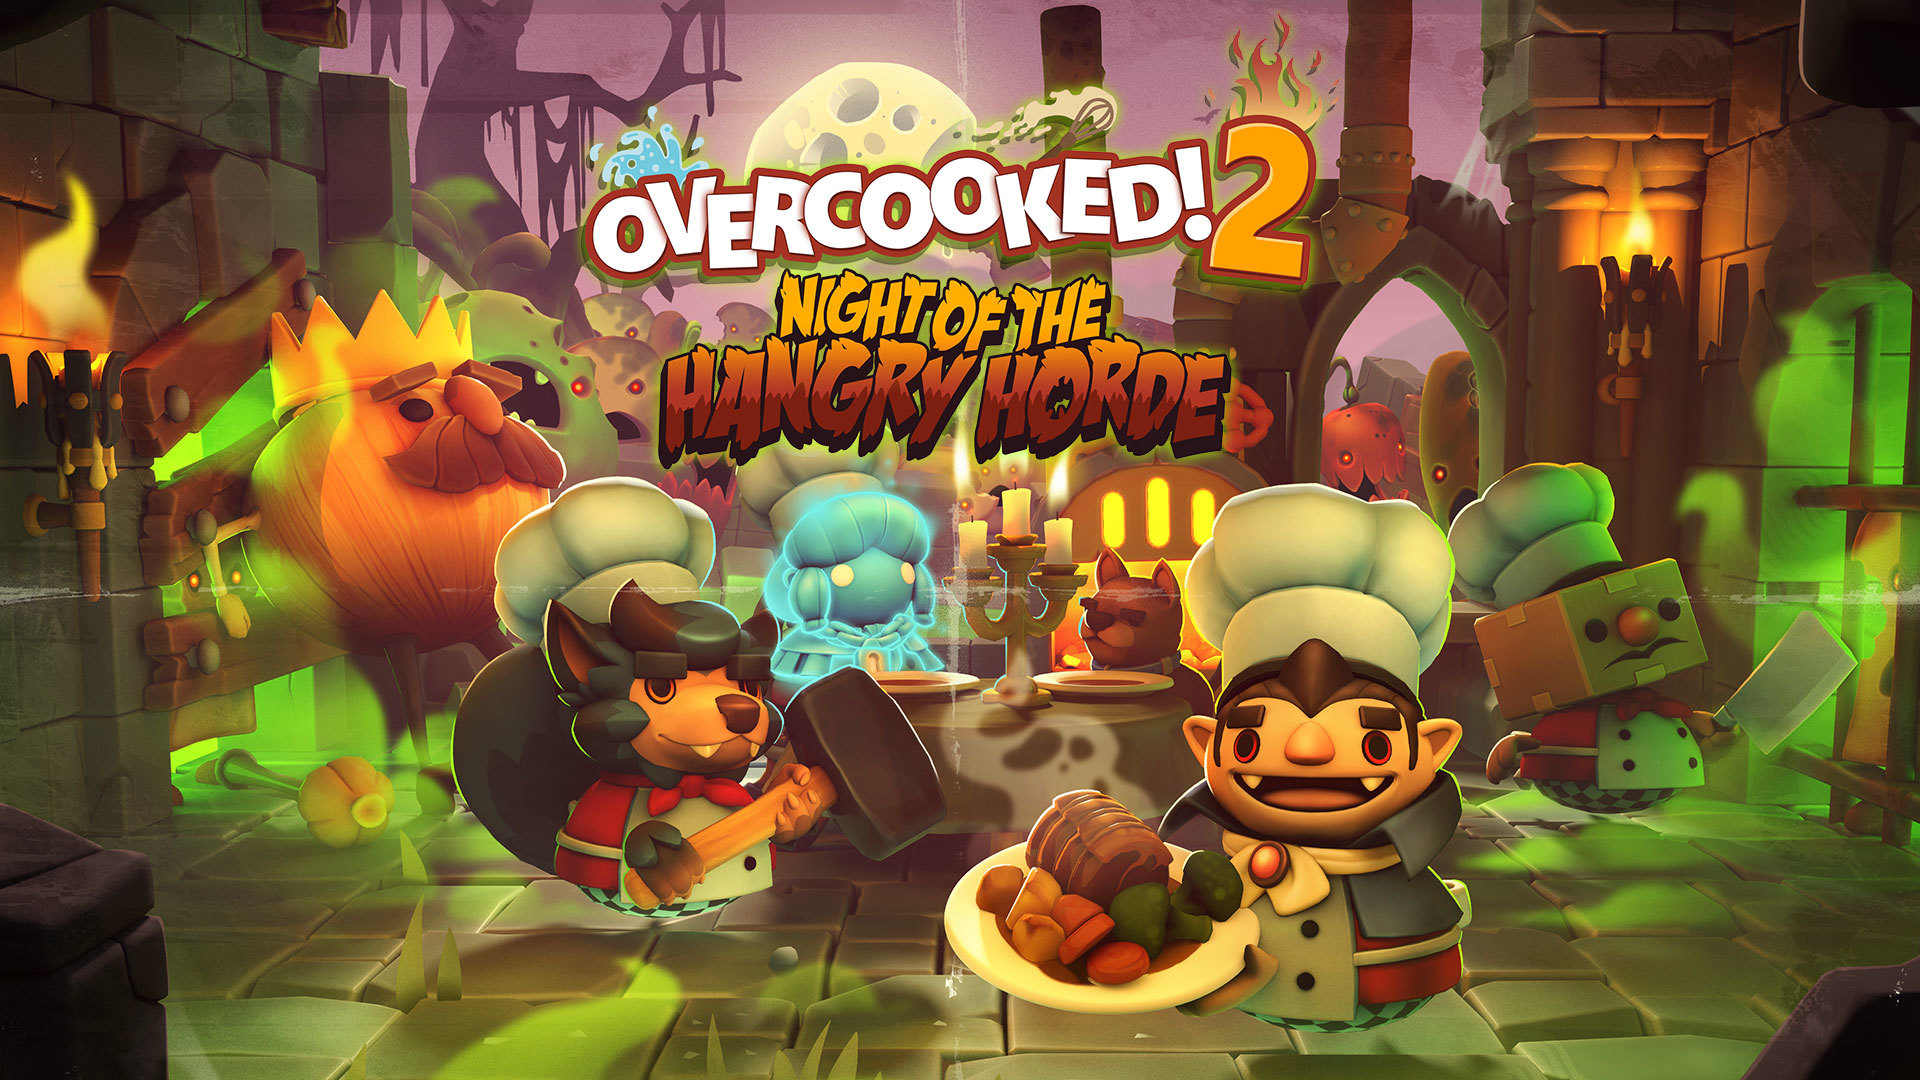 Overcooked 2 - Night of the Hangry Horde (2019) / Online - полная версия